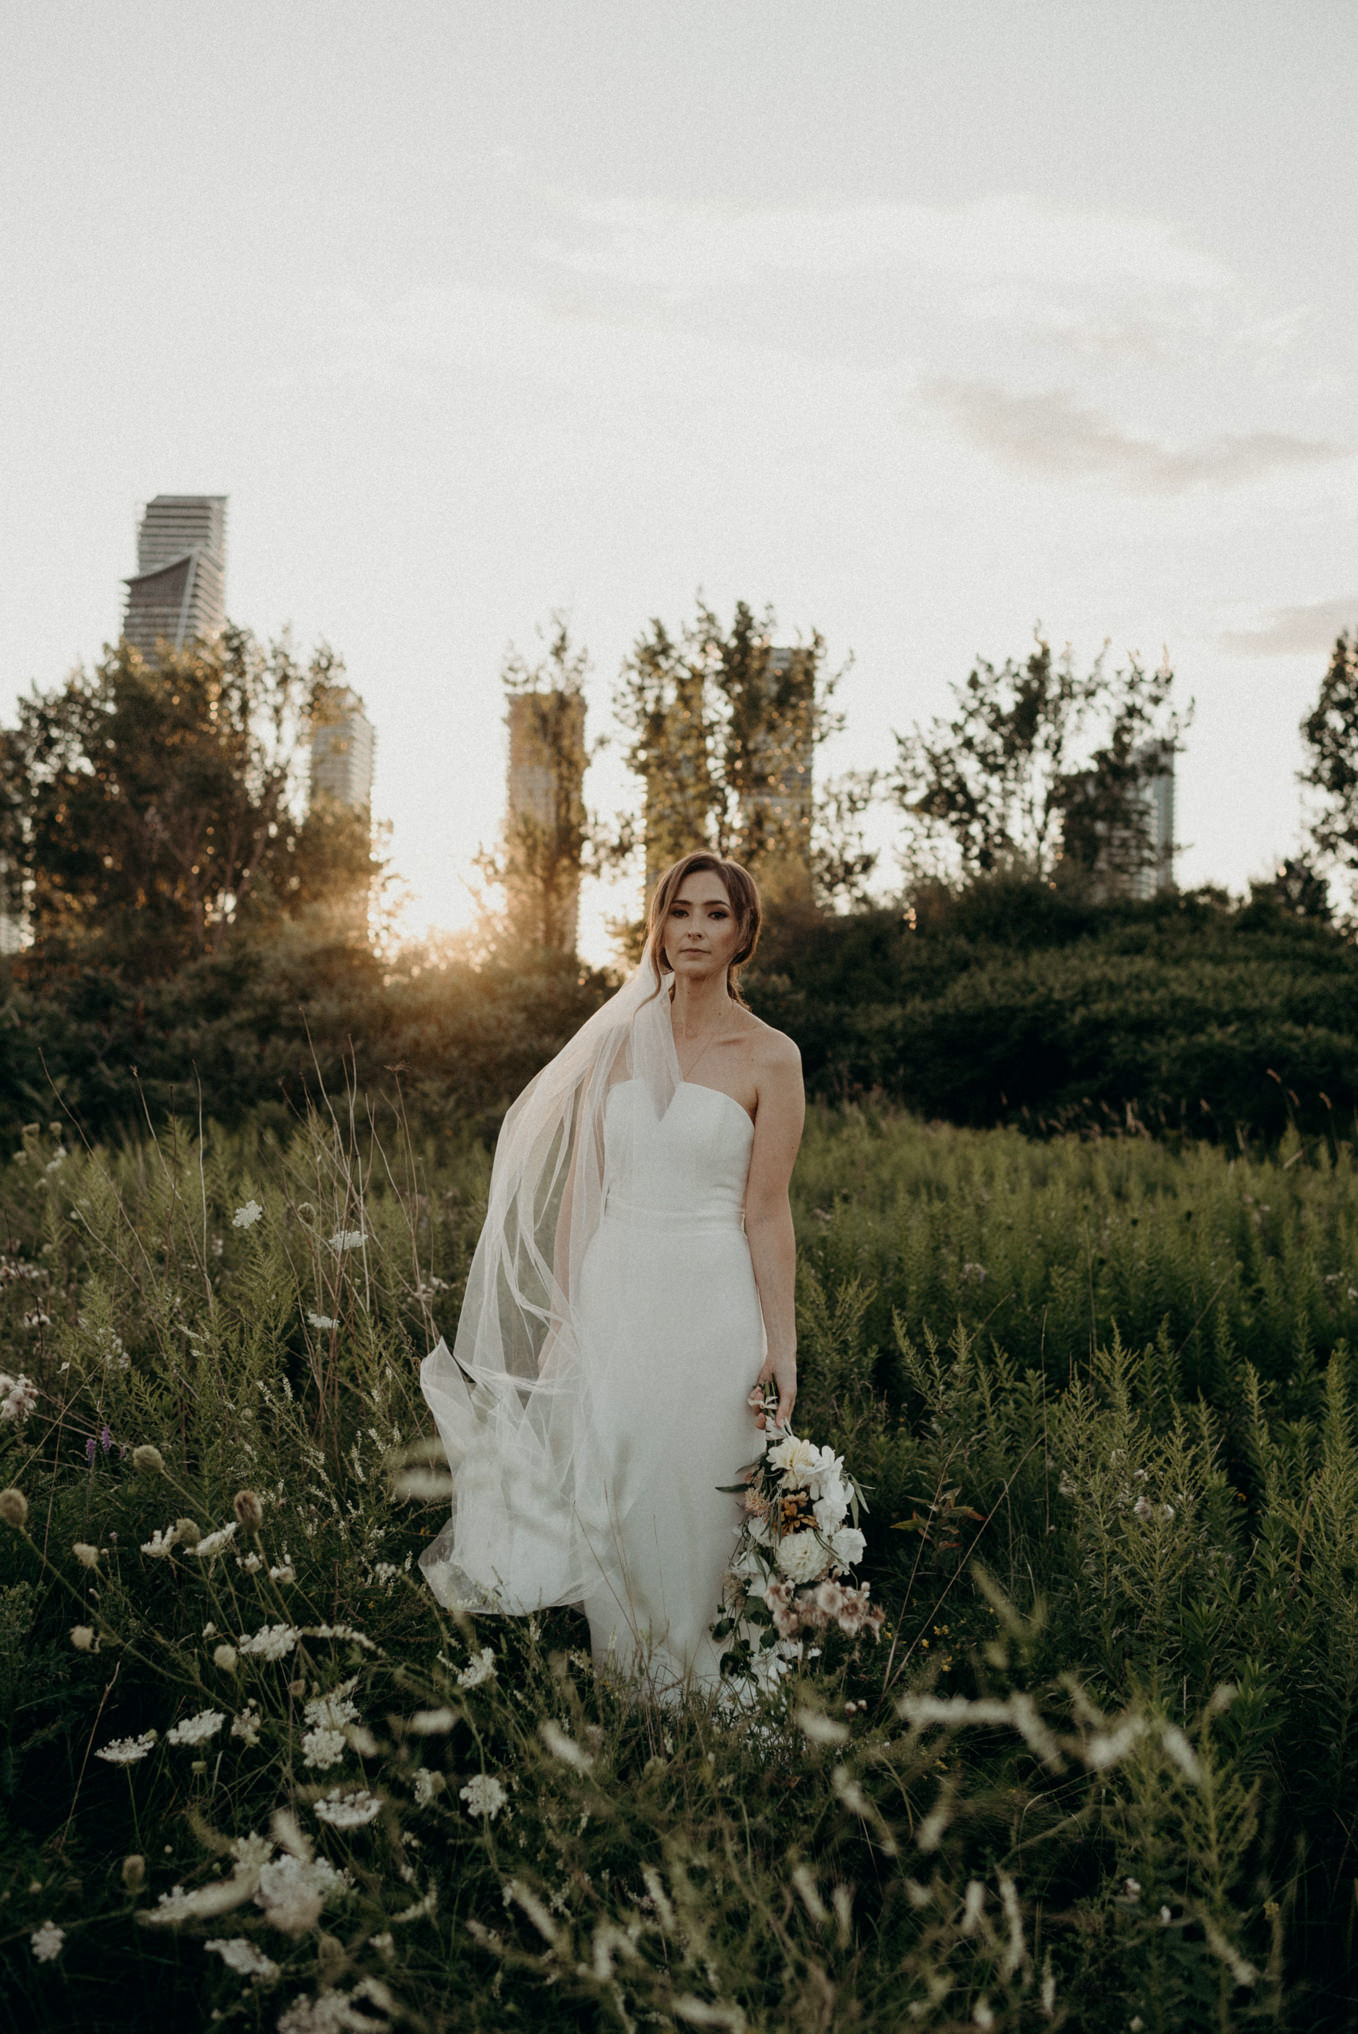 bride with sunset and condo buildings in background at Humber Bay. Toronto elopement portraits.